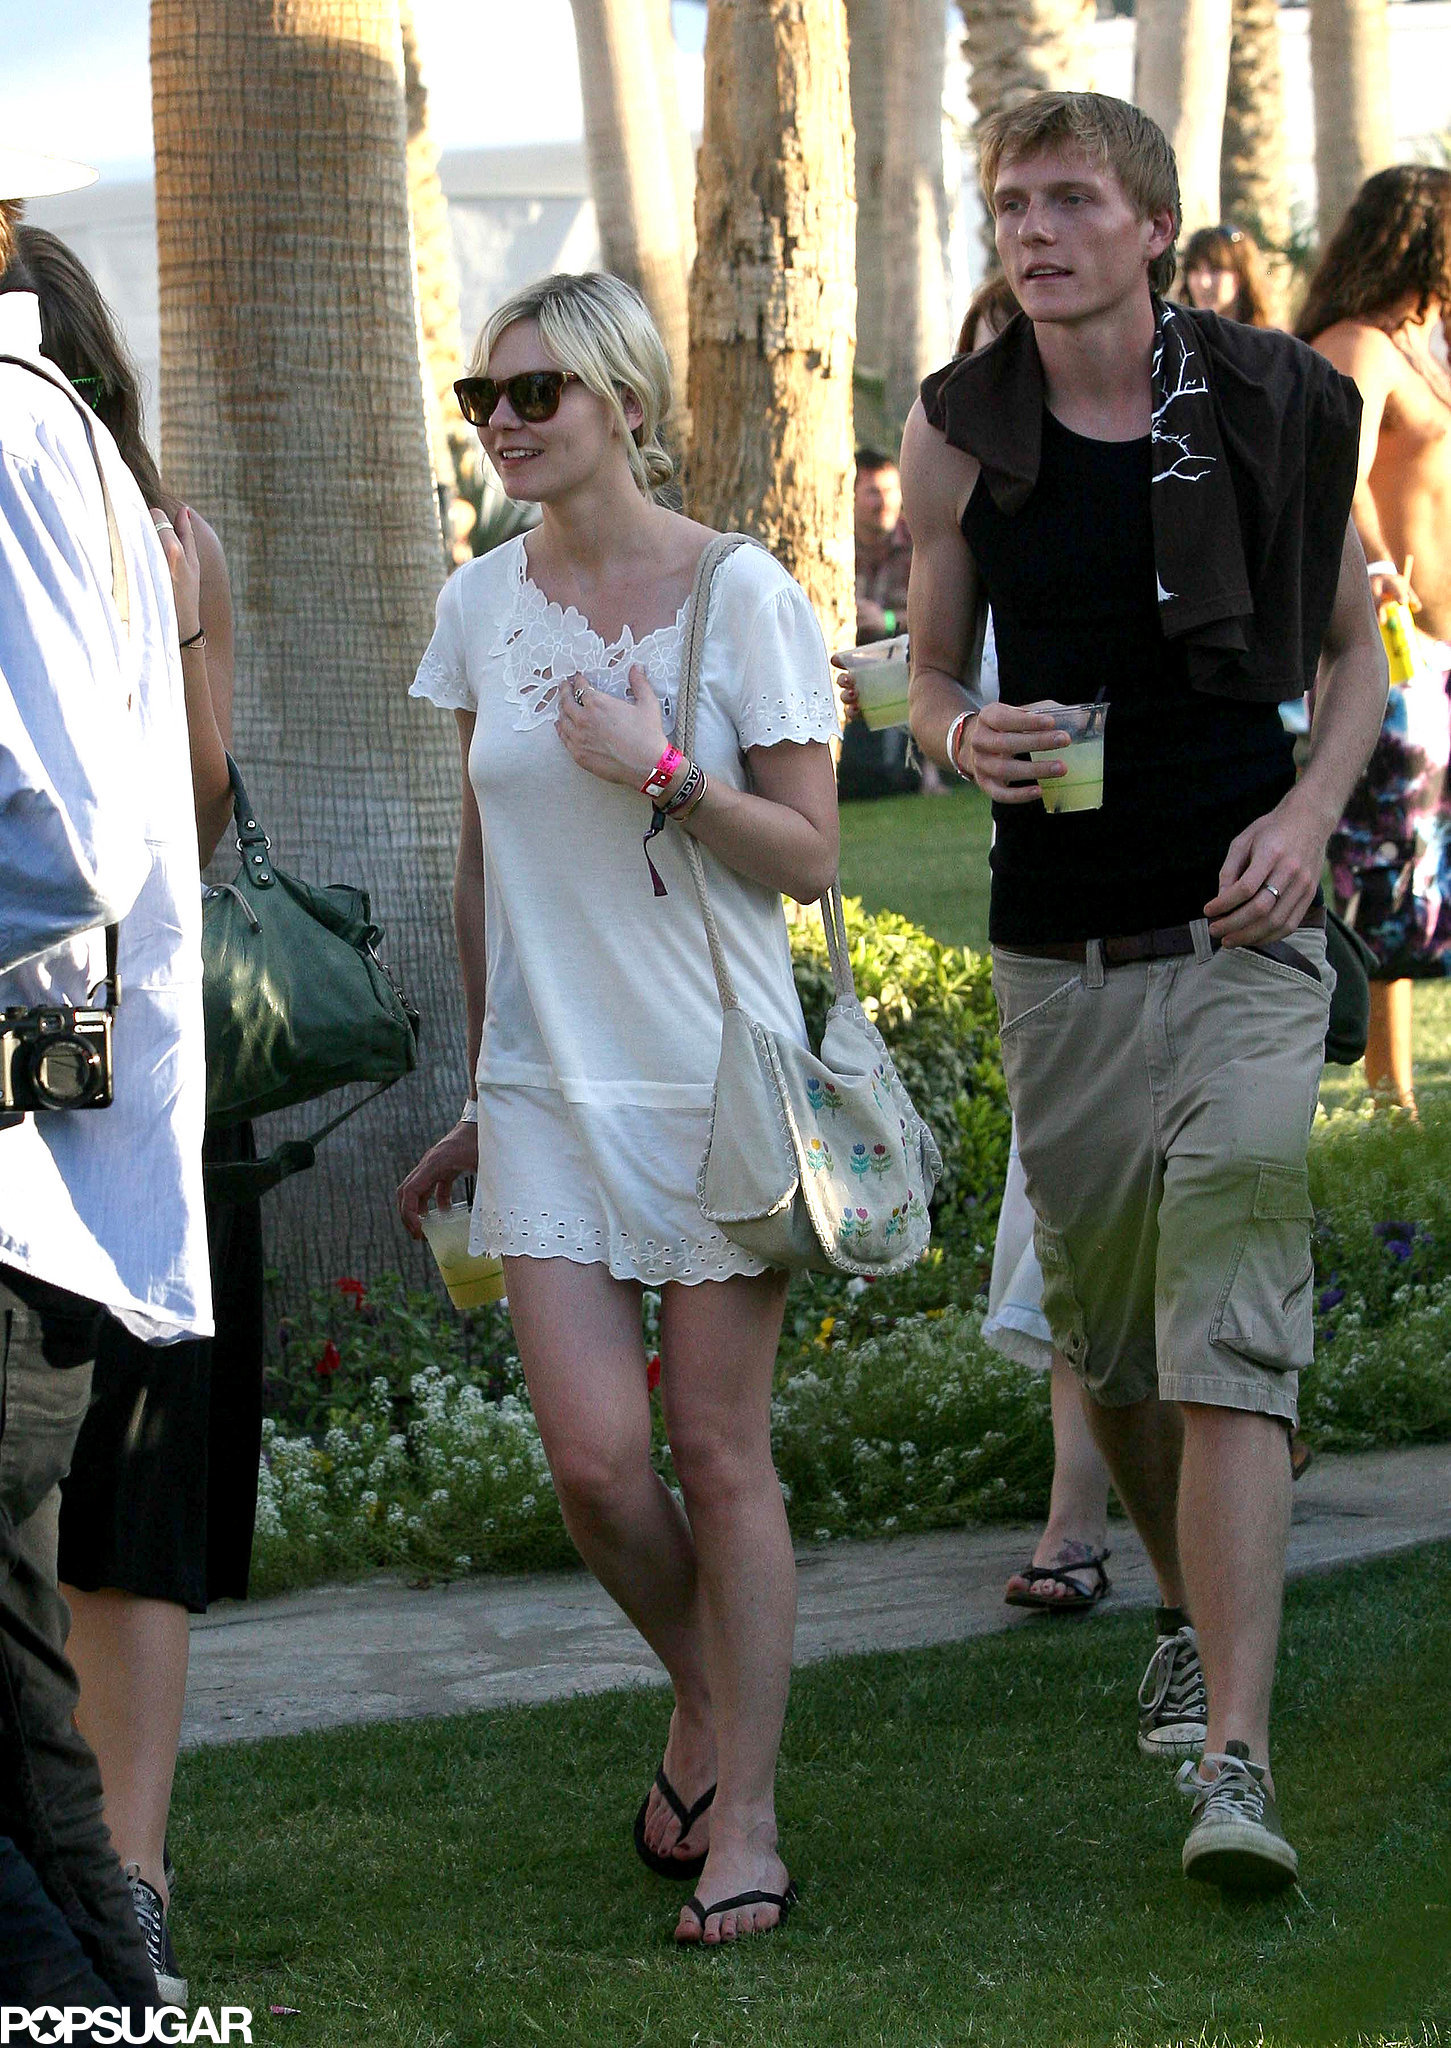 Kirsten Dunst wore a sundress for Coachella 2009.